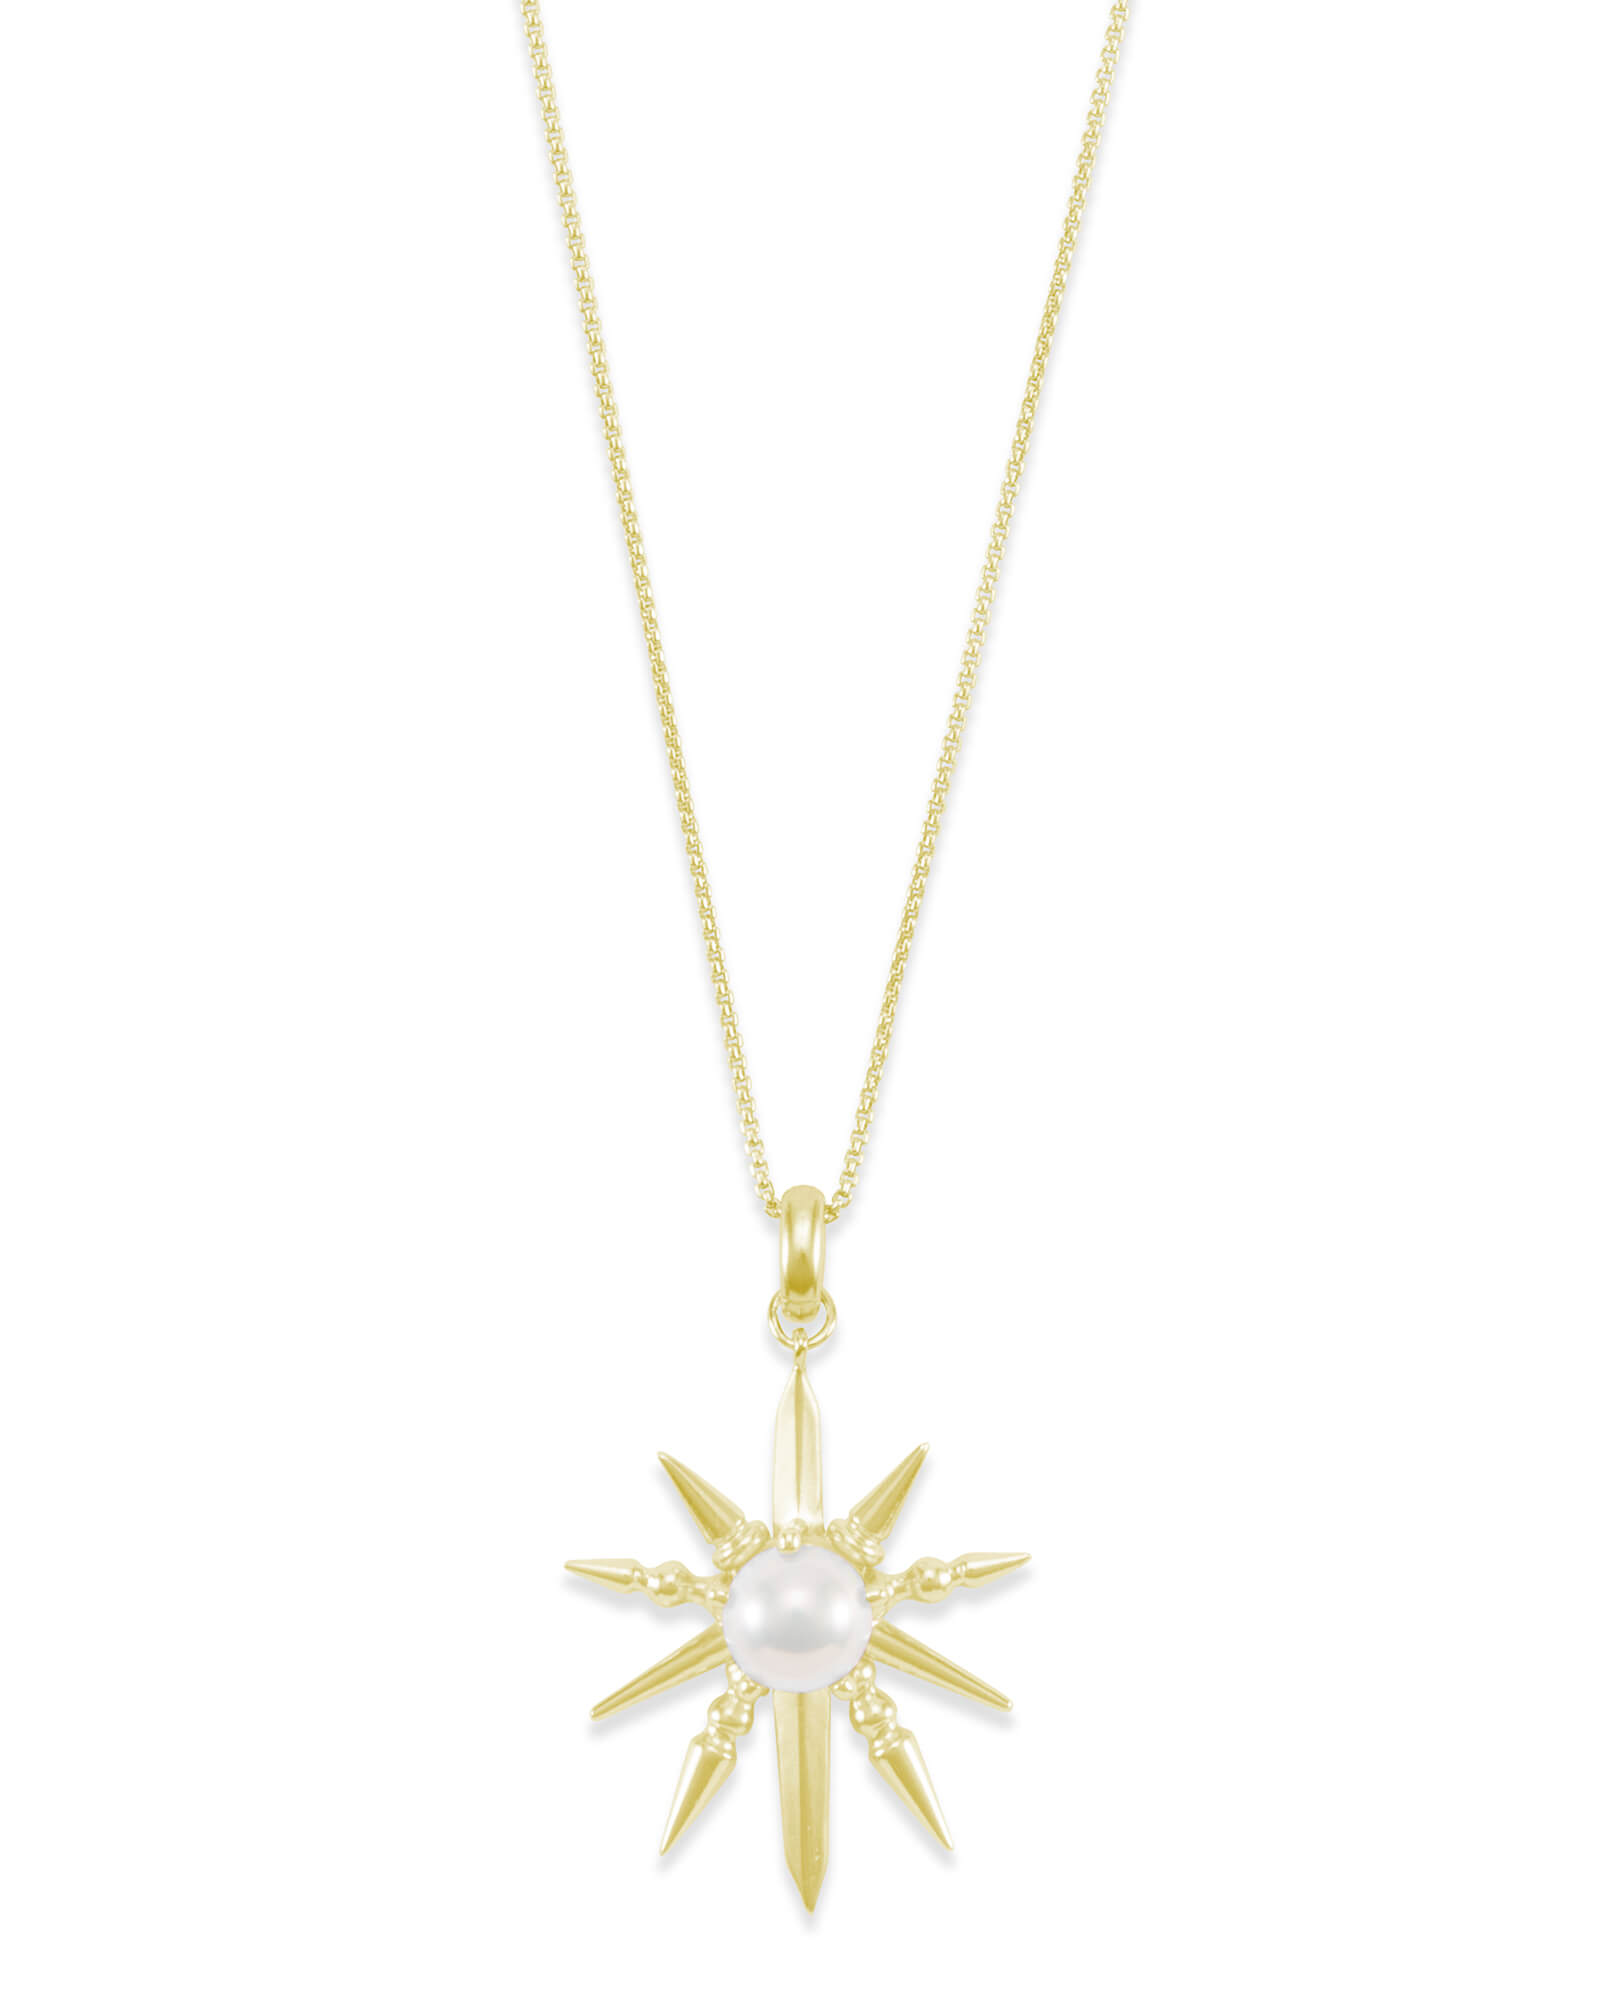 Sunburst With Pearl Charm Necklace Set